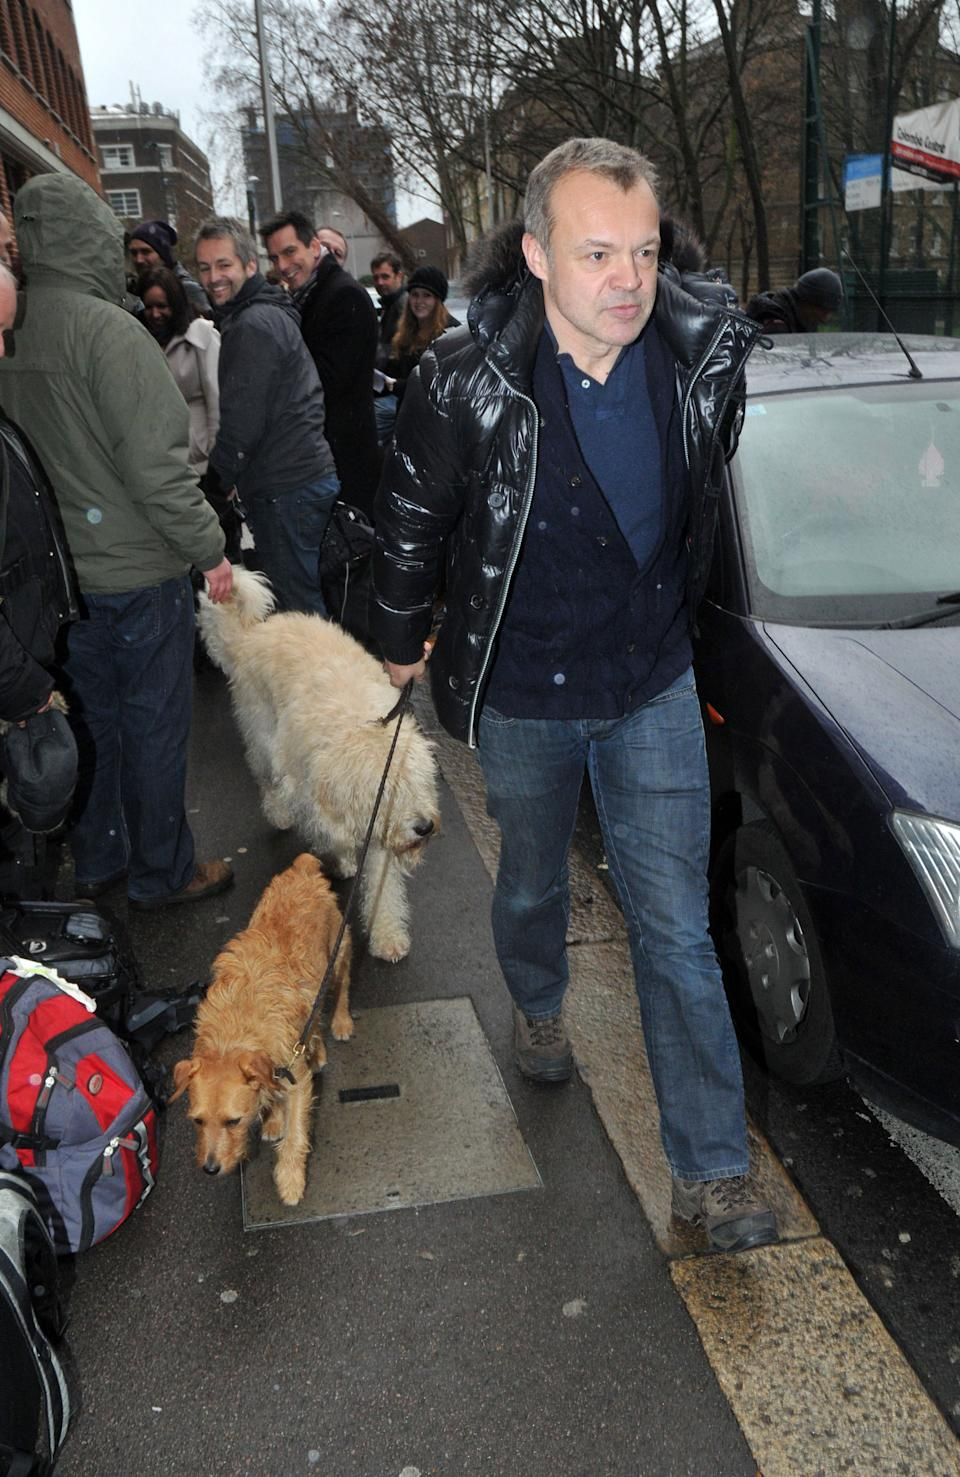 Graham Norton walks his dogs on the southbank on January 27, 2011 in London, England. (Photo by SAV/FilmMagic)